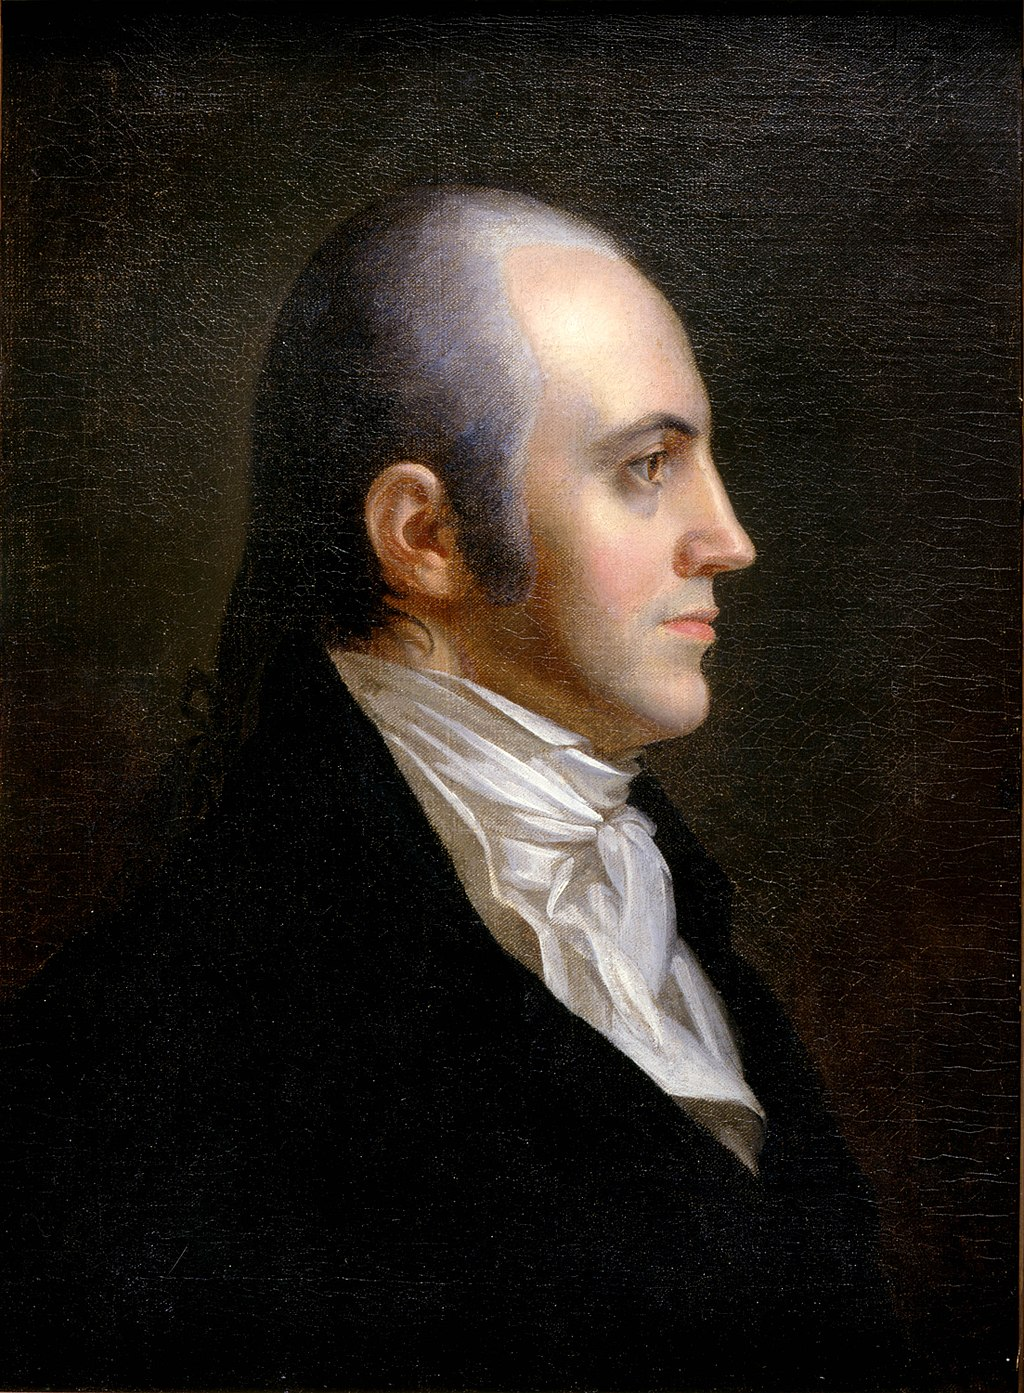 An early 19th century painting of Aaron Burr.